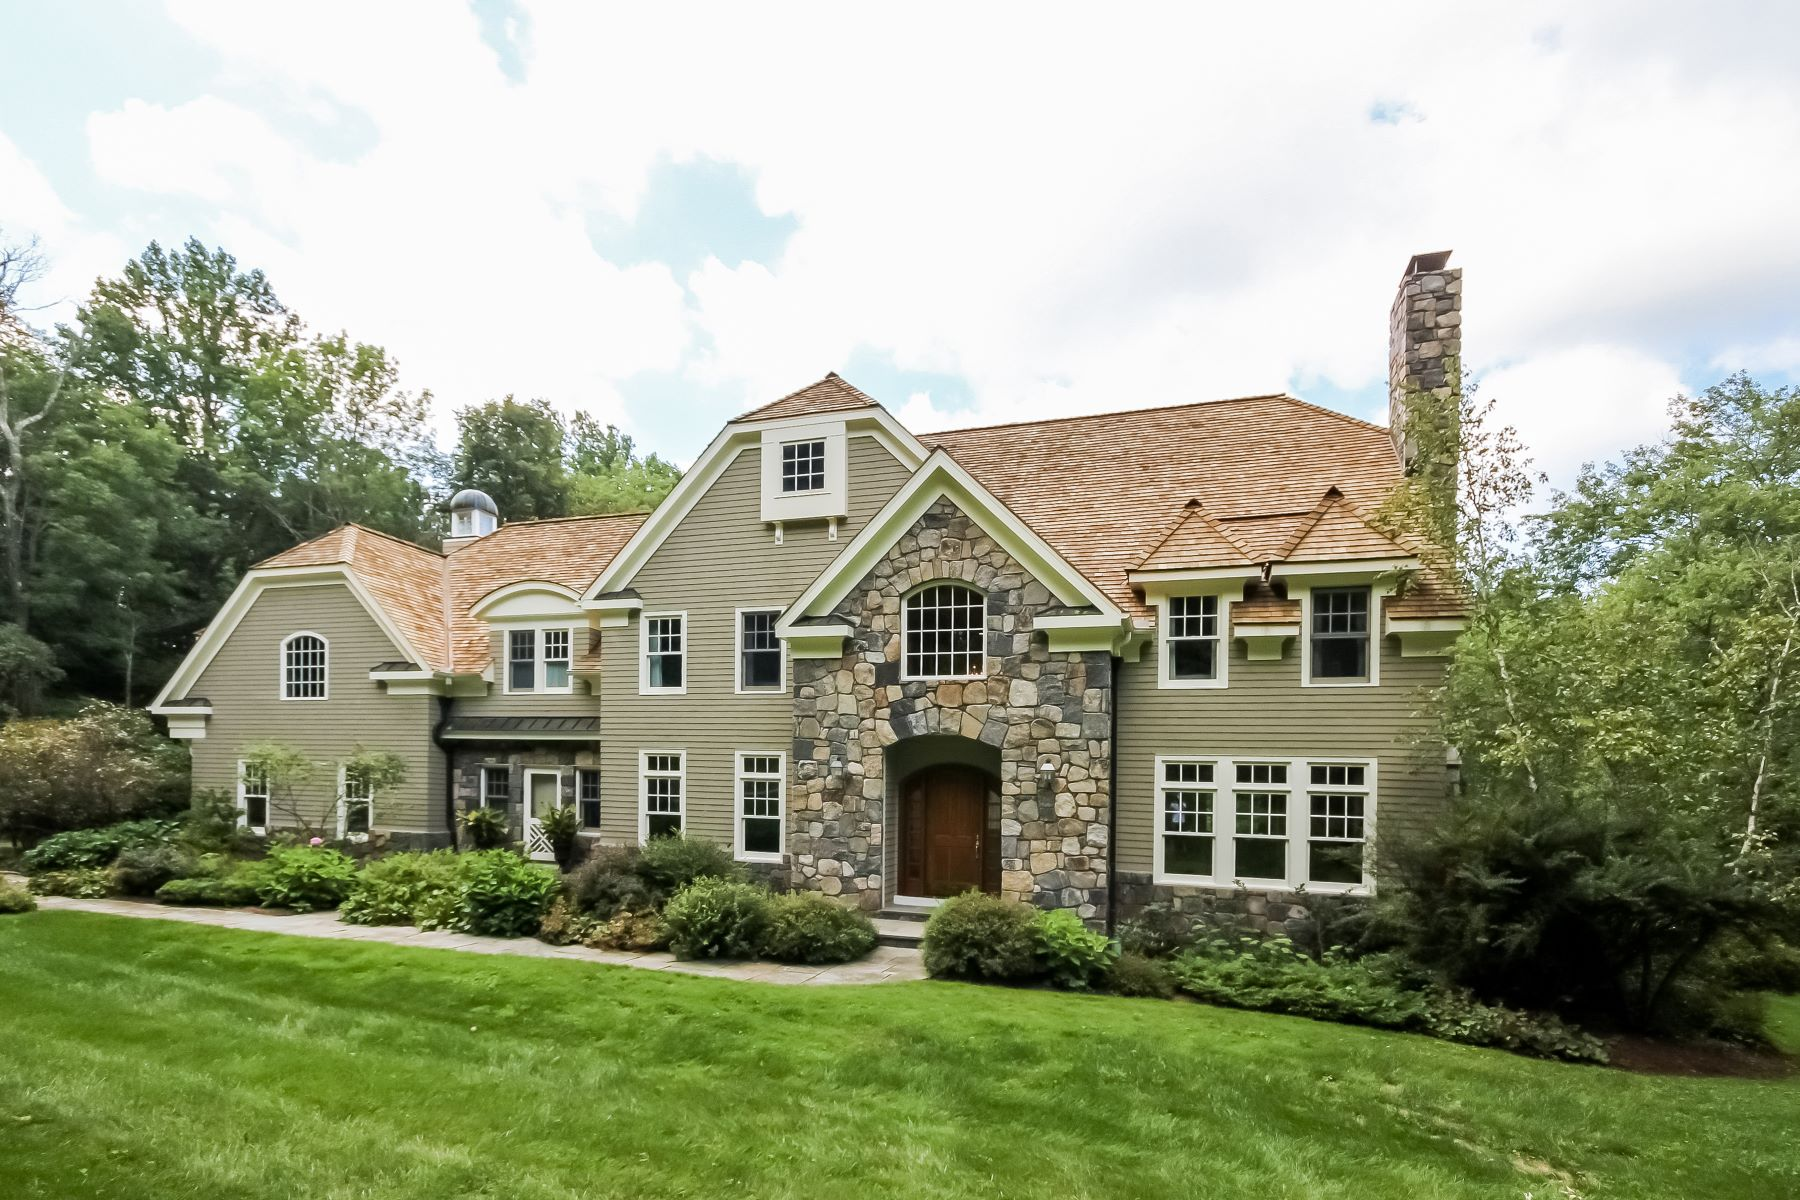 Single Family Home for Sale at Sophisticated Shingle Style Home 15 Cedar Ln Ridgefield, Connecticut, 06877 United States